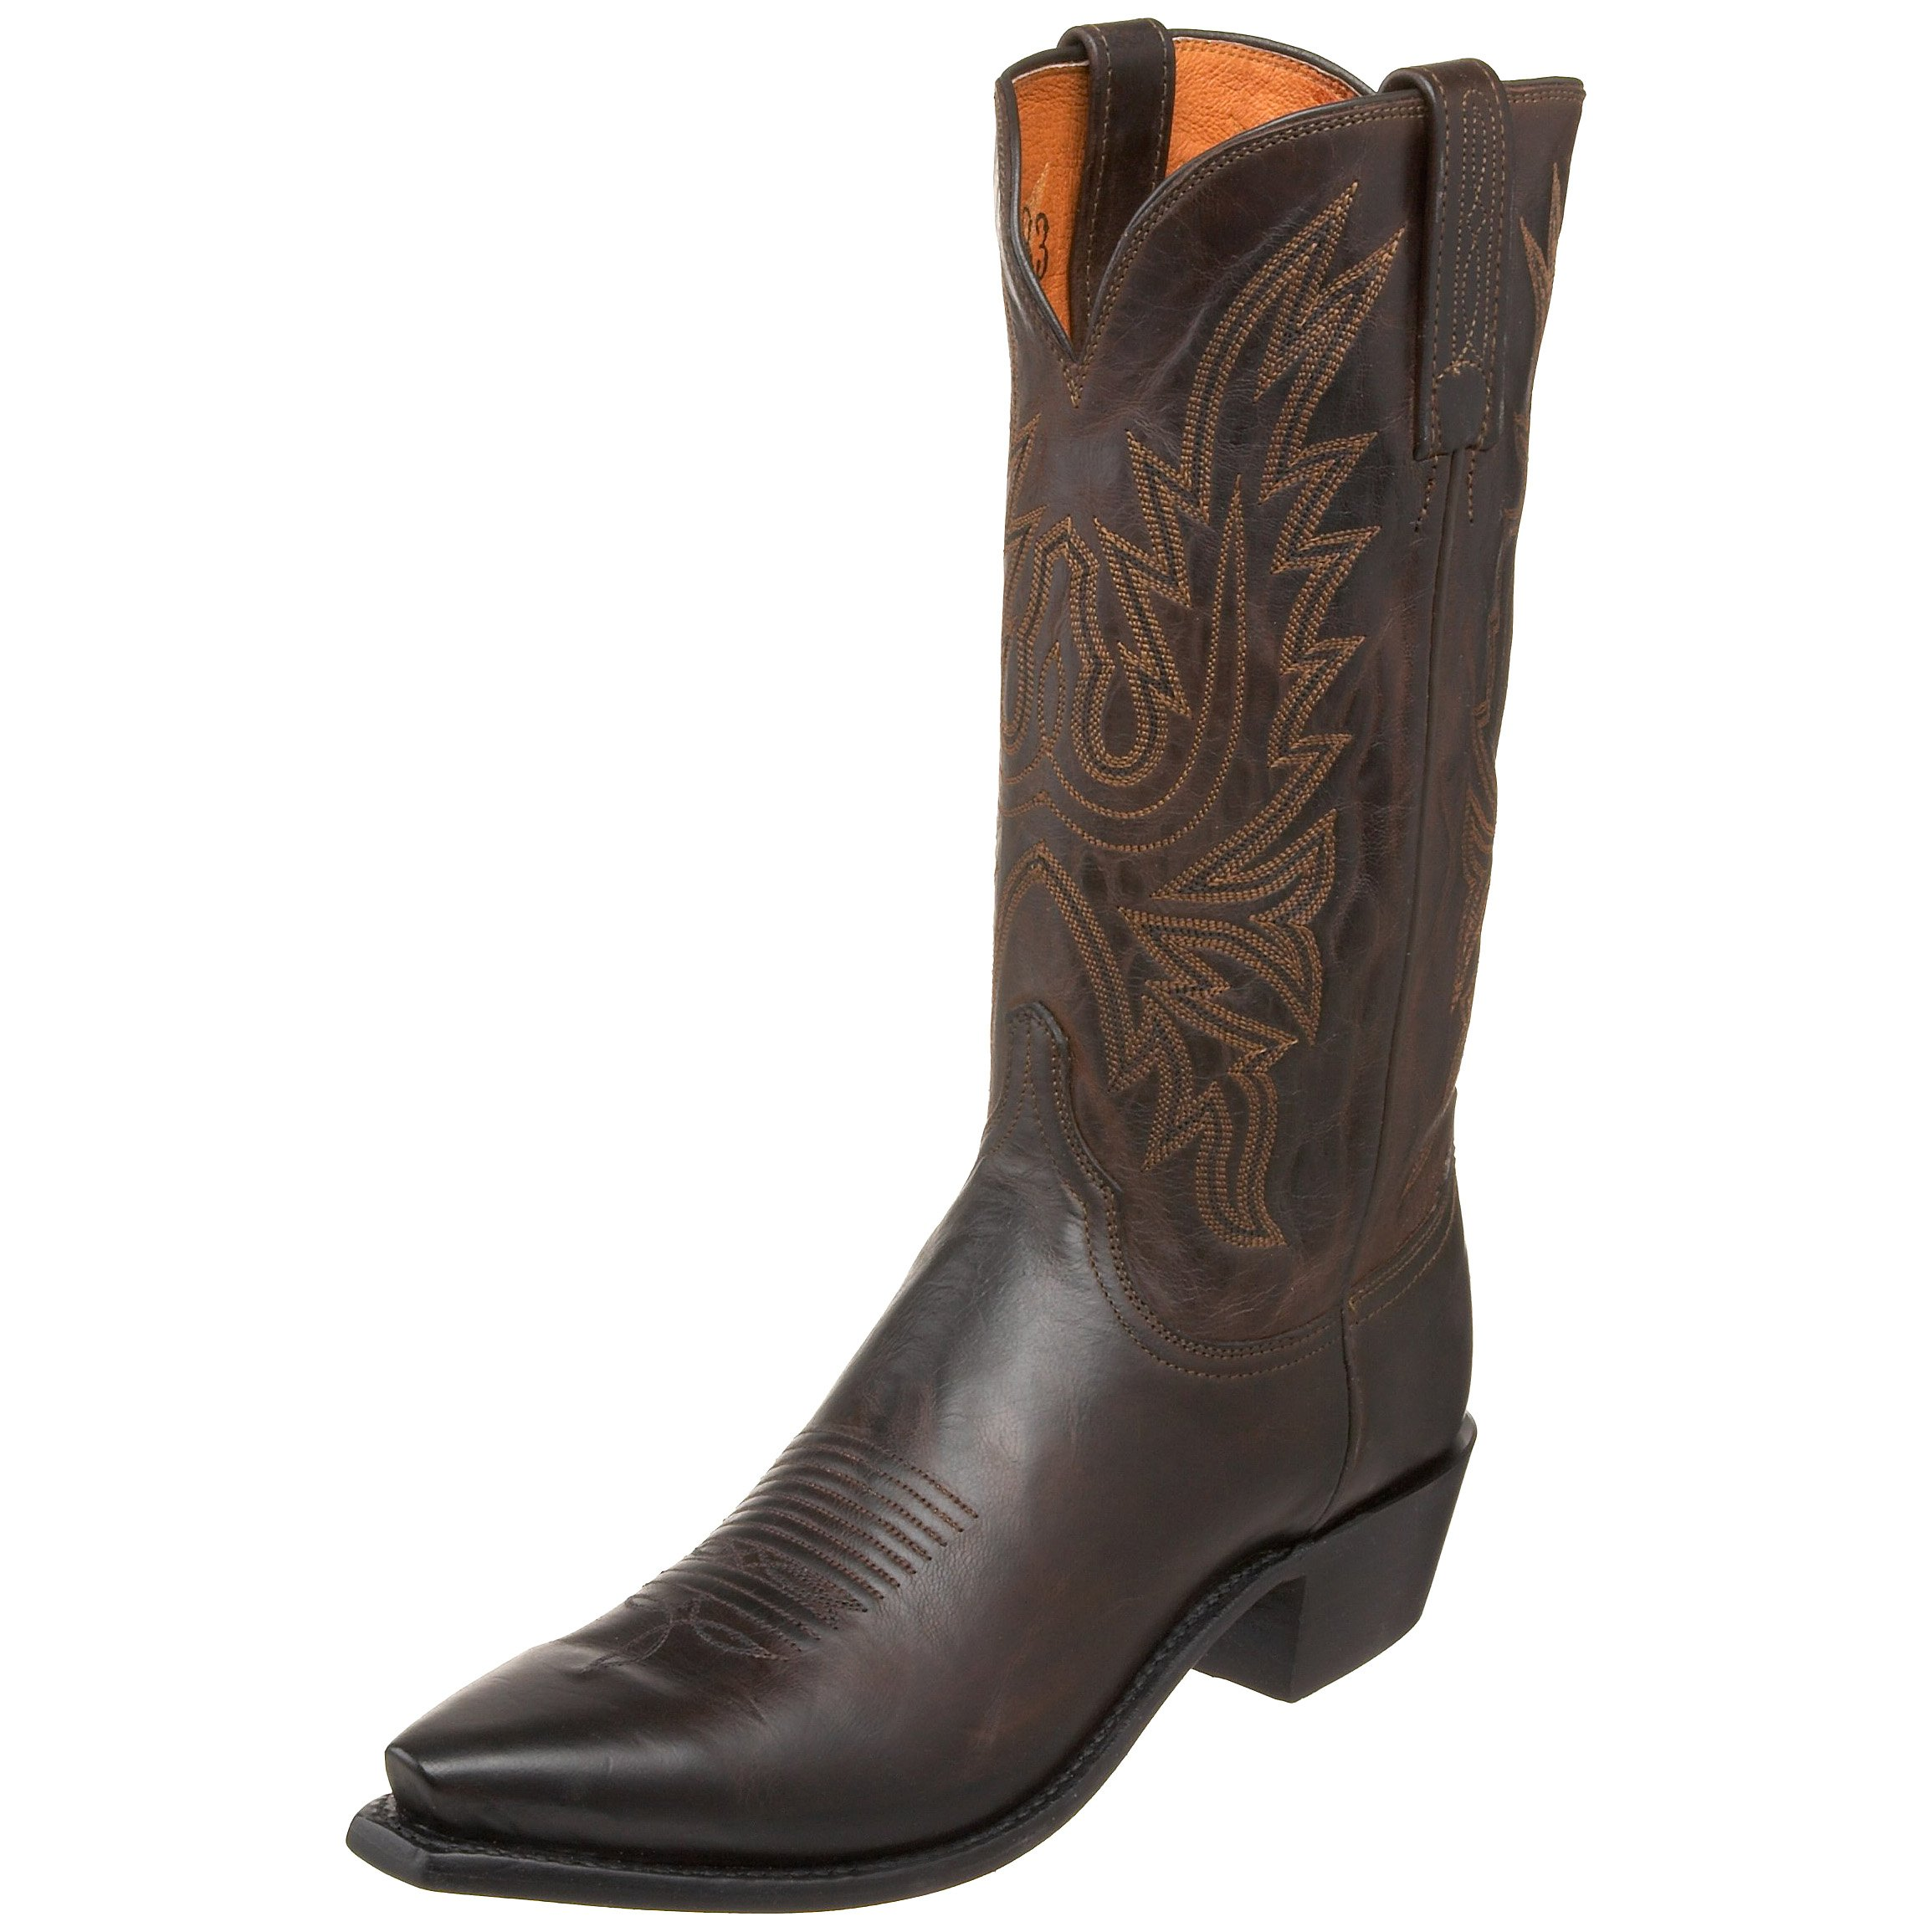 1883 by Lucchese Men's N1556.54 Western Boot,Chocolate,7 D US